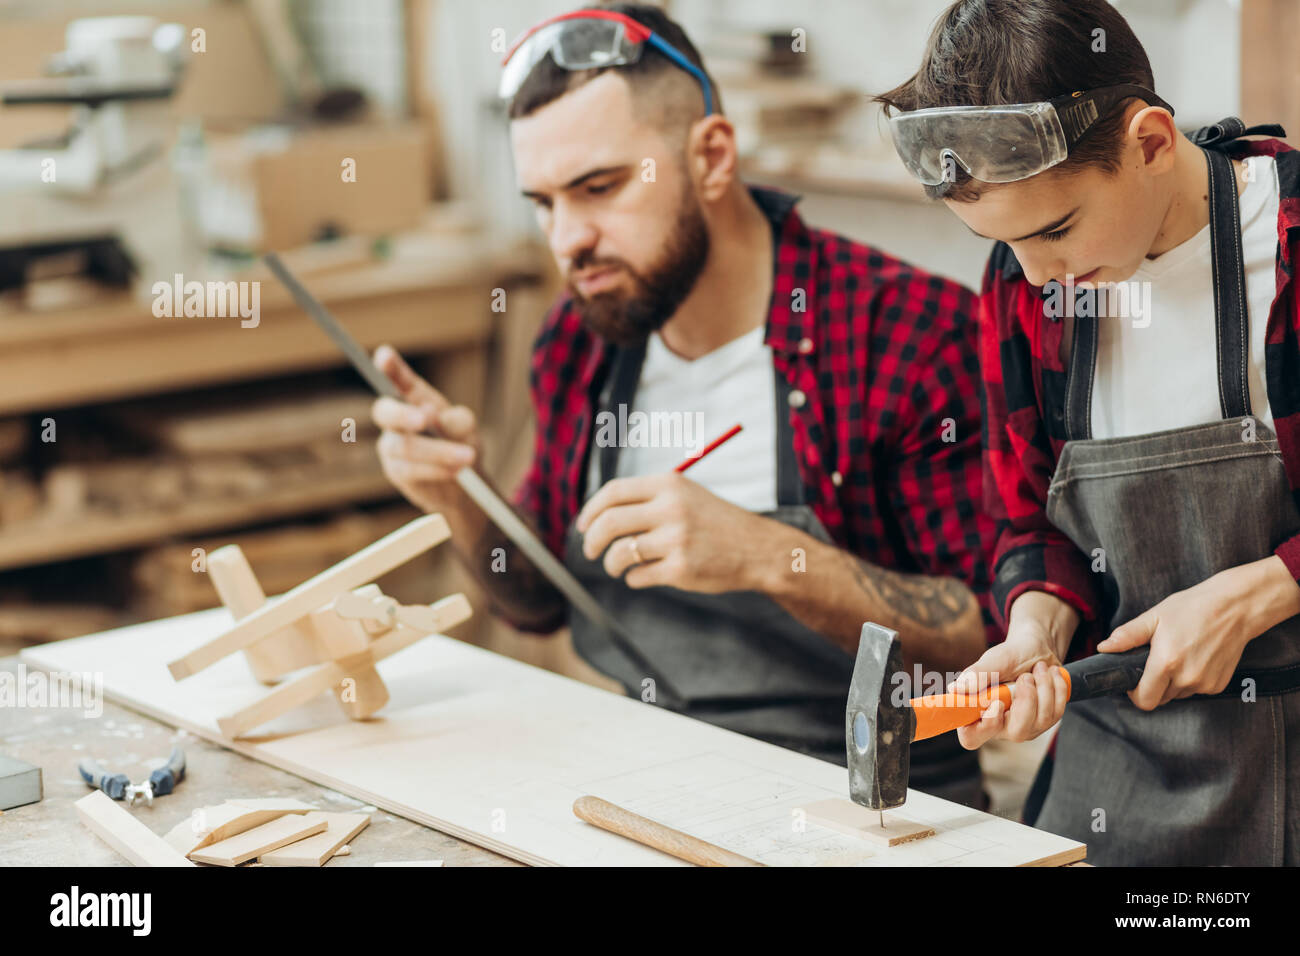 In carpentry coworking studio children and youngsters can learn a useful profession together with Dad. There are carpentry classes for beginners in th Stock Photo